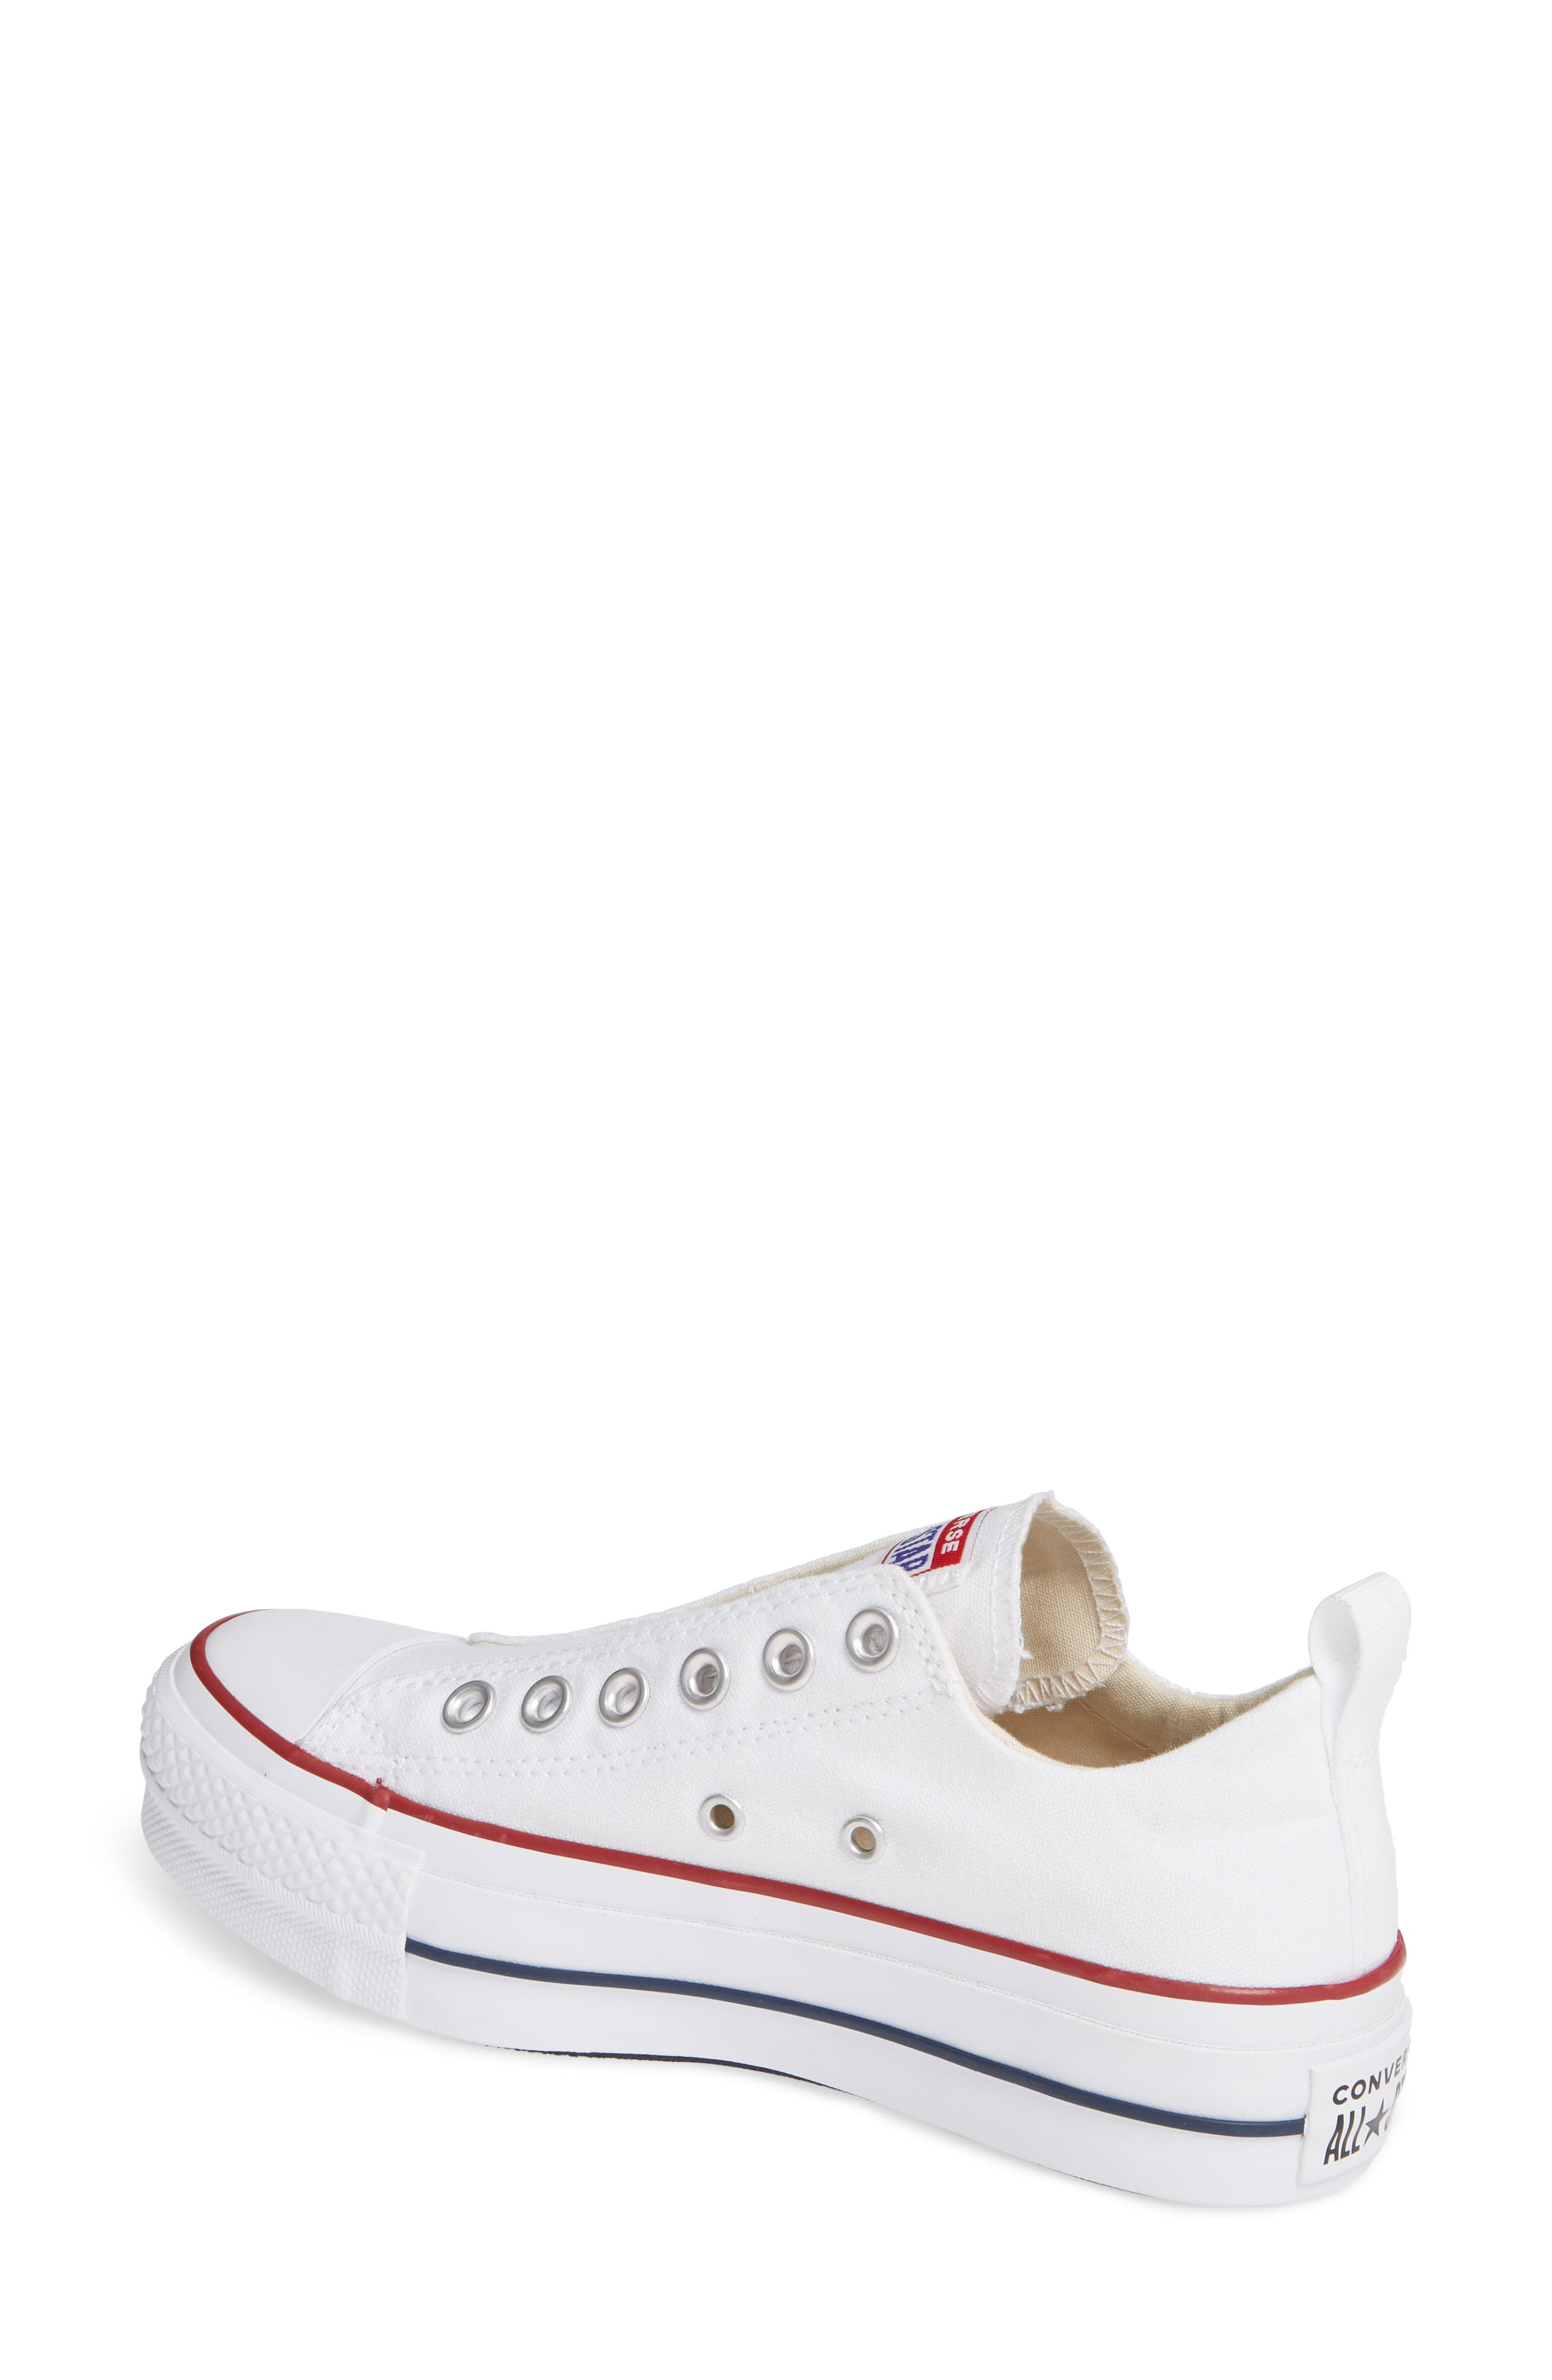 CONVERSE, Chuck Taylor<sup>®</sup> All Star<sup>®</sup> Low Top Sneaker, Alternate thumbnail 2, color, WHITE/ RED/ BLUE